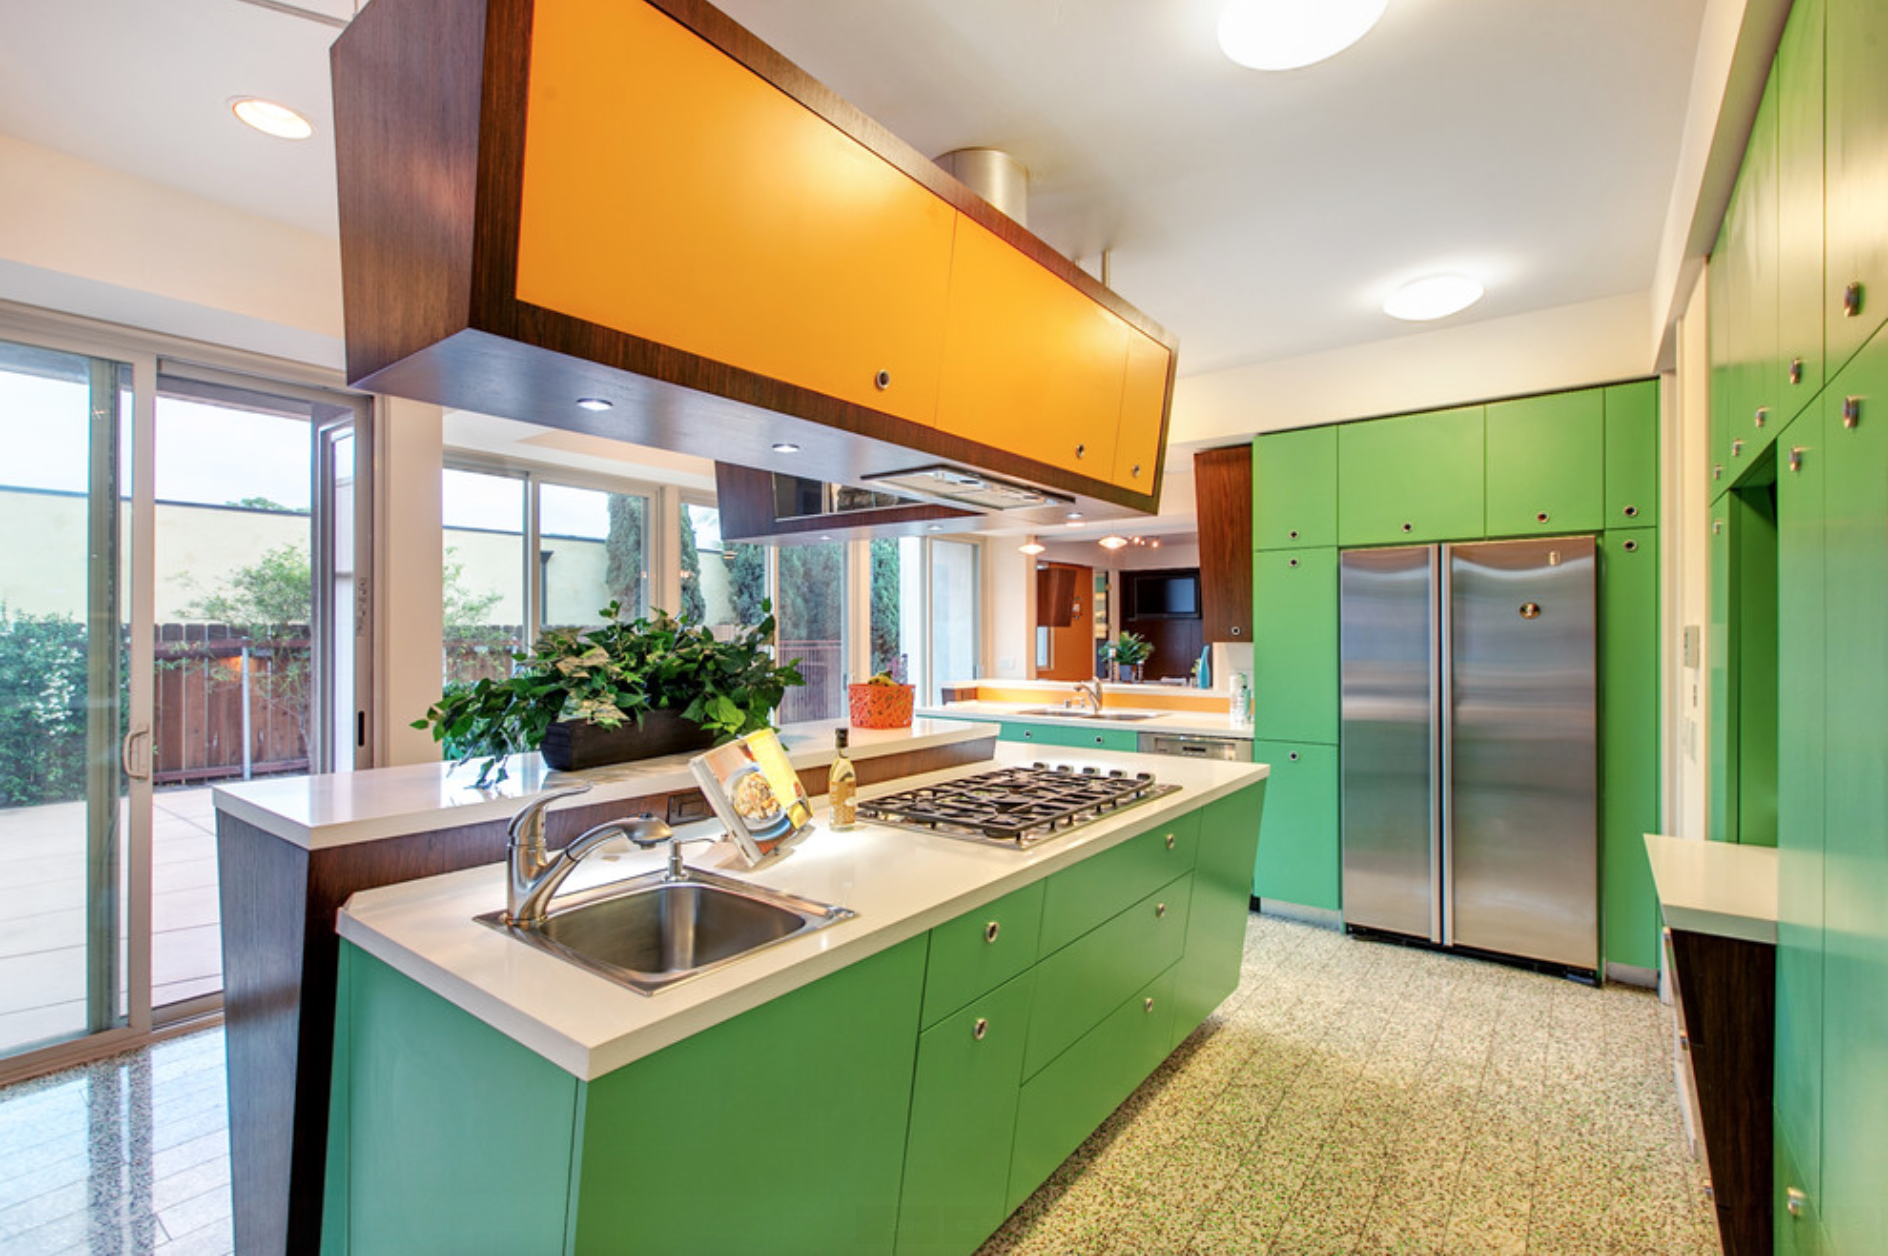 Best One More View Of This Mid Century Modern Styled Kitchen 400 x 300